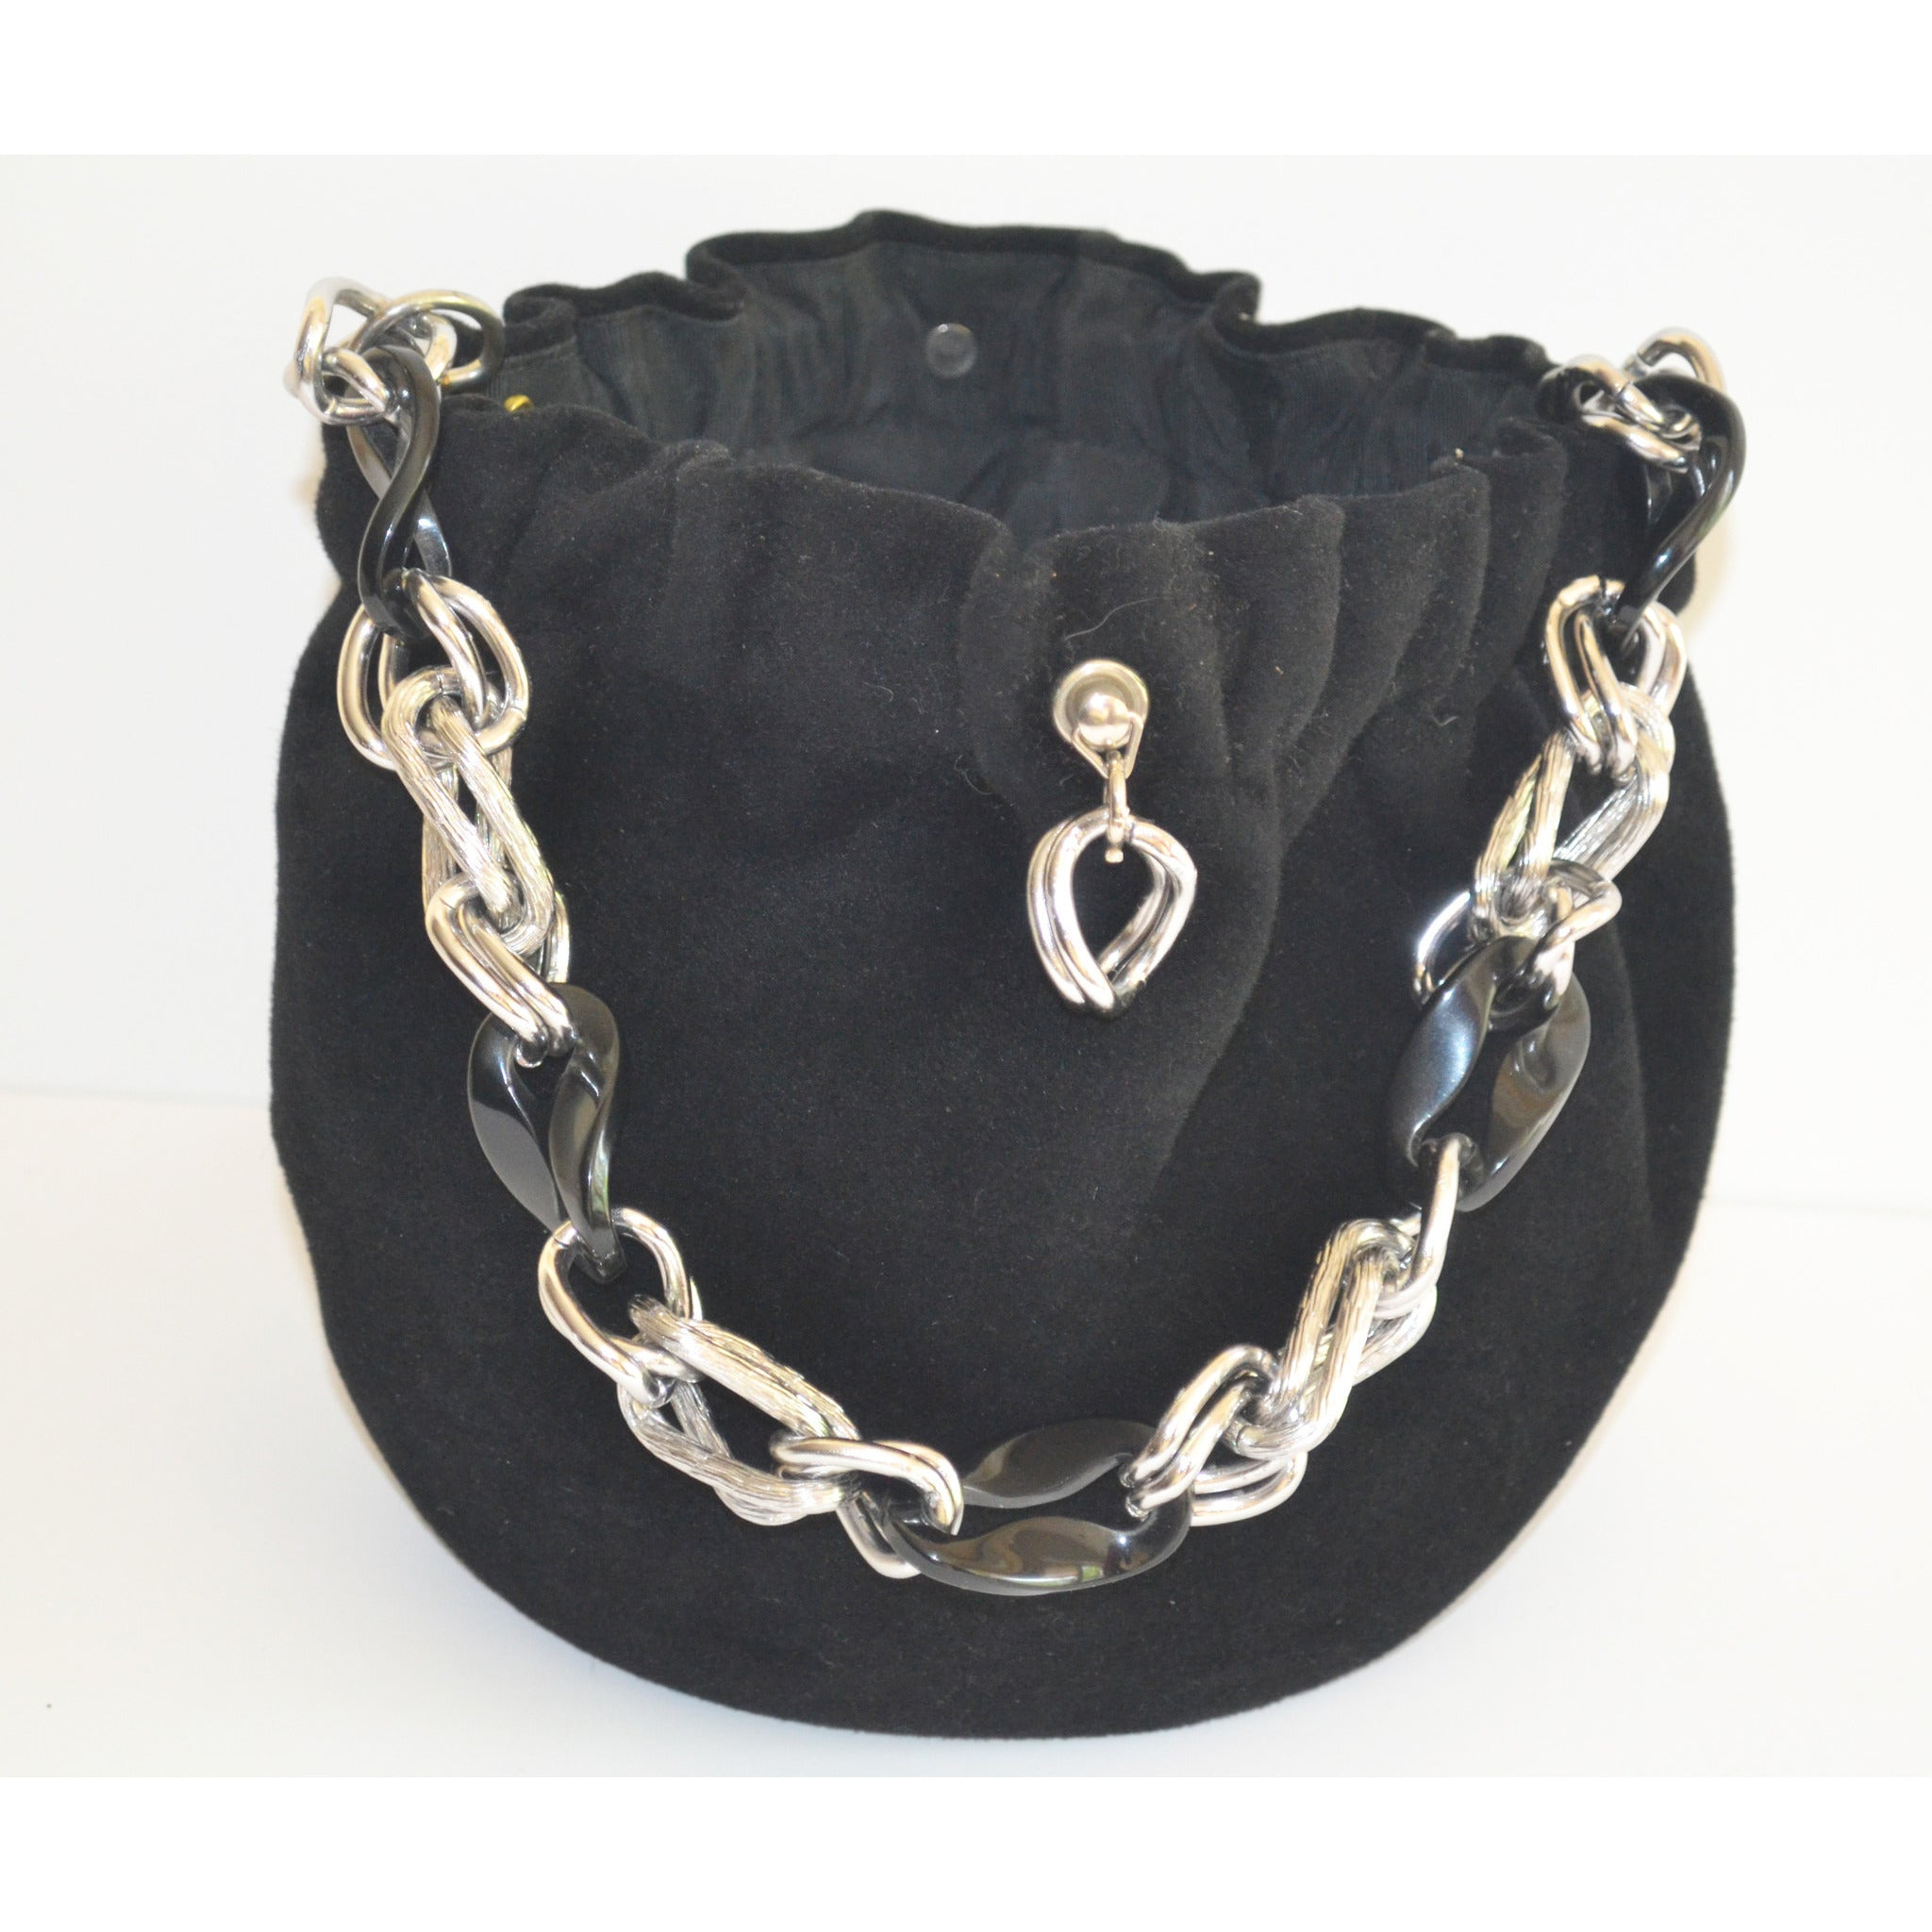 Vintage Black Velvet Chain Purse By Morris Moskowitz